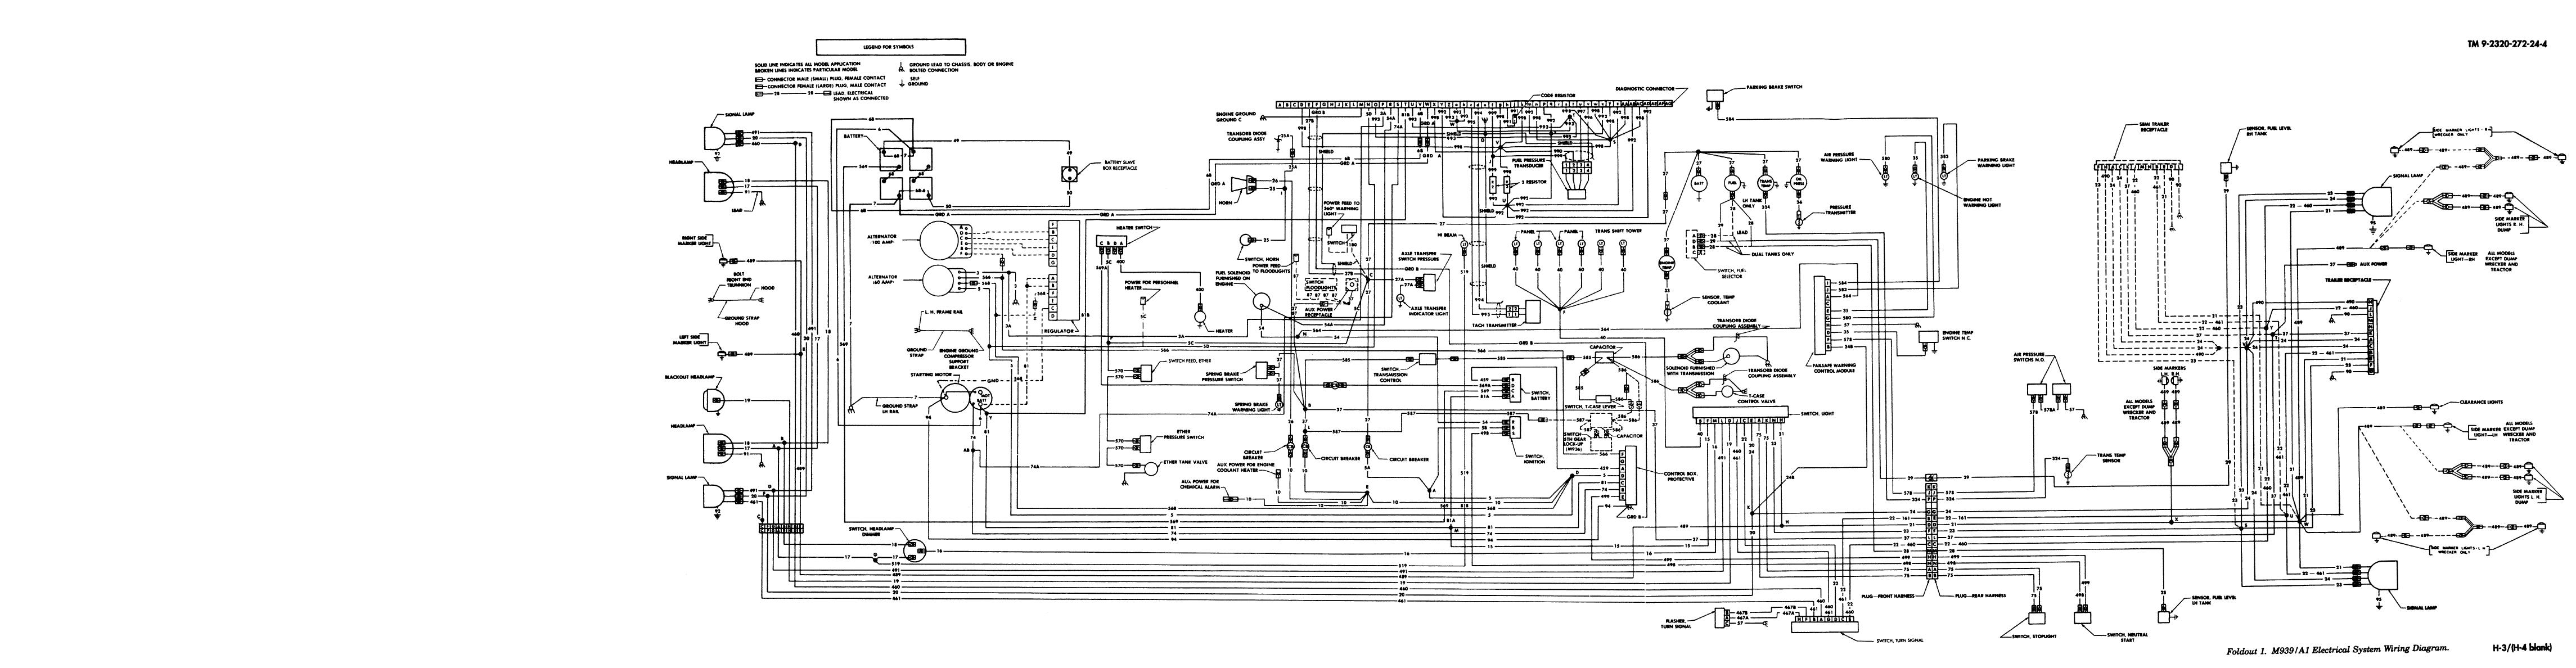 Foldout 1  M939  A1 Electrical System Wiring Diagram